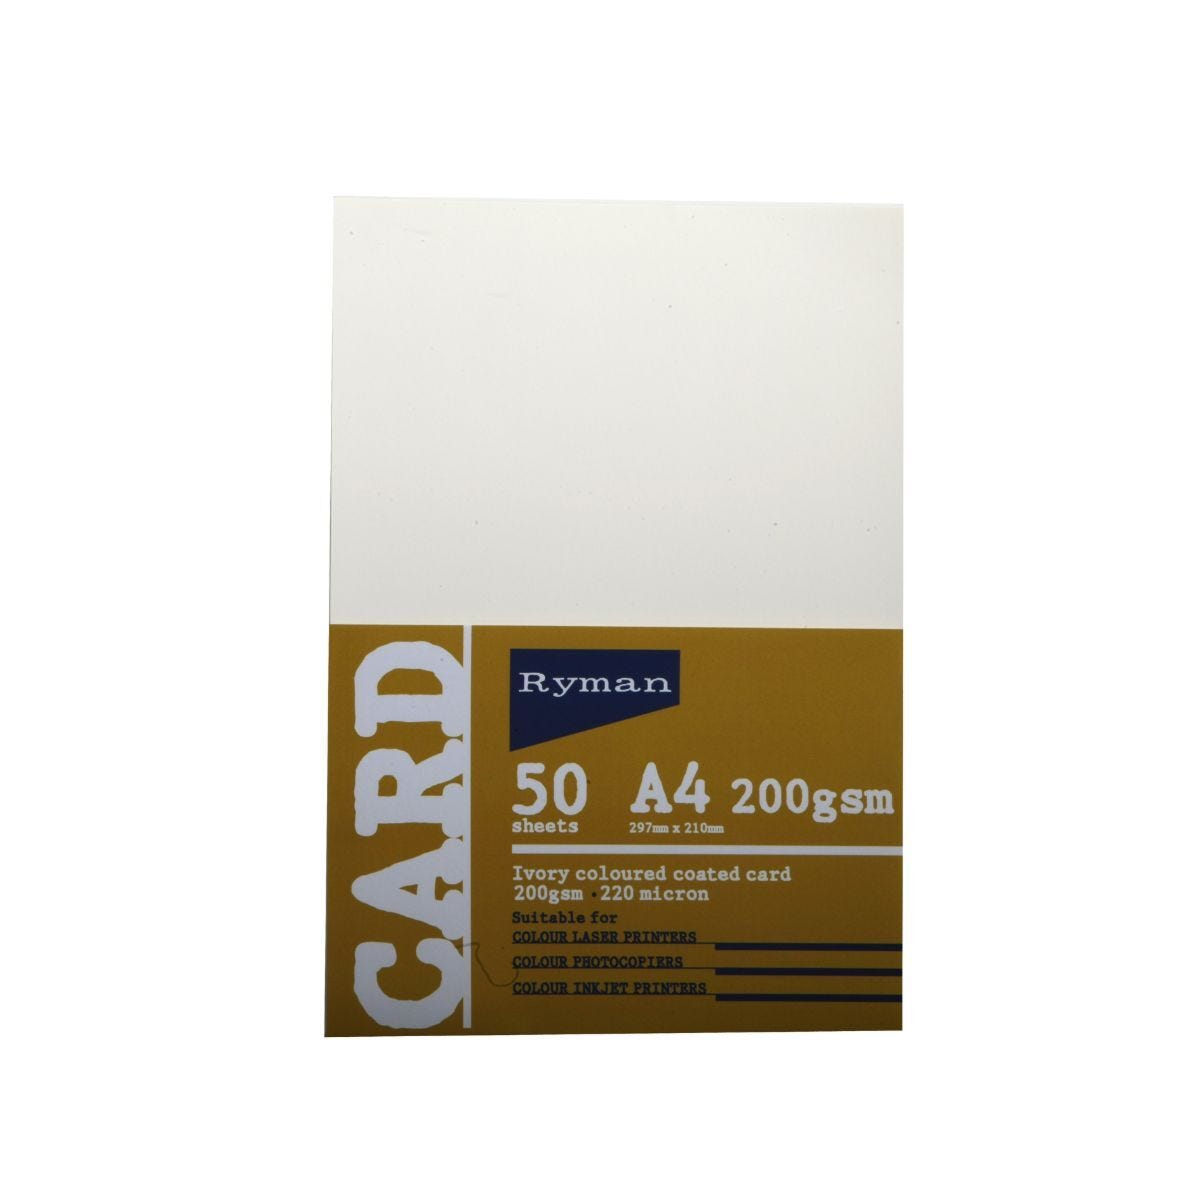 Ryman Card A4 200gsm  50 Sheets Ivory